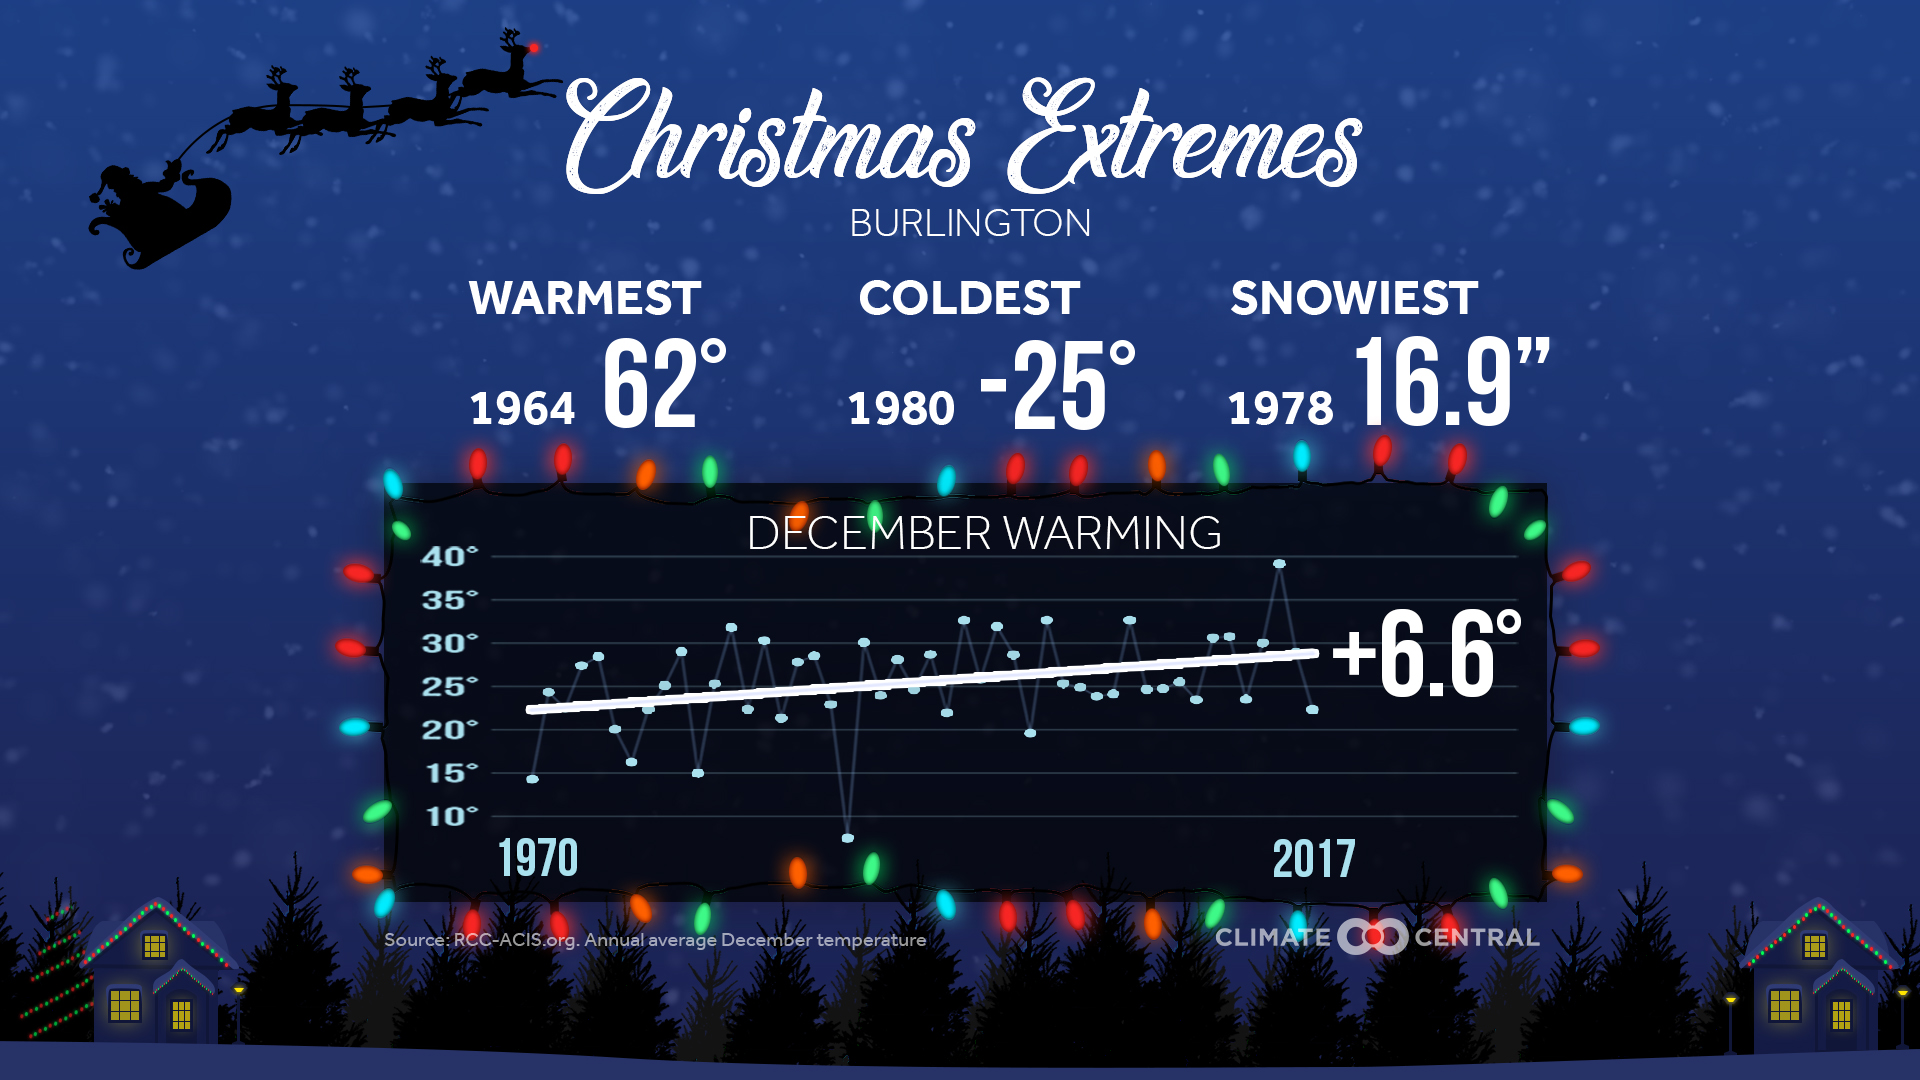 Christmas Climate Extremes Across the U.S.